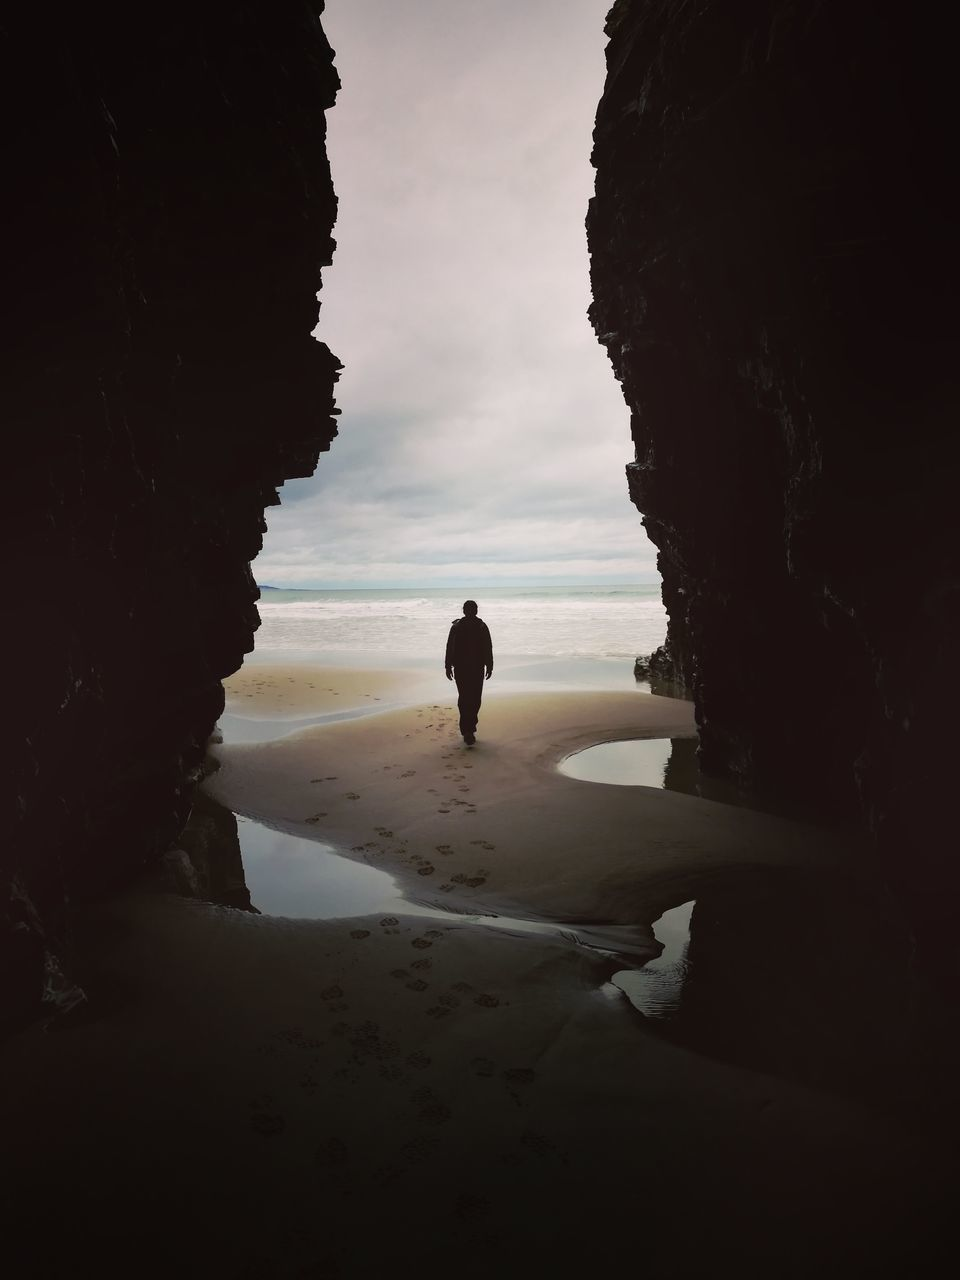 rock formation, sea, silhouette, full length, beach, nature, rock - object, one person, sand, sky, cave, beauty in nature, scenics, real people, tranquility, horizon over water, water, sunset, men, outdoors, day, people